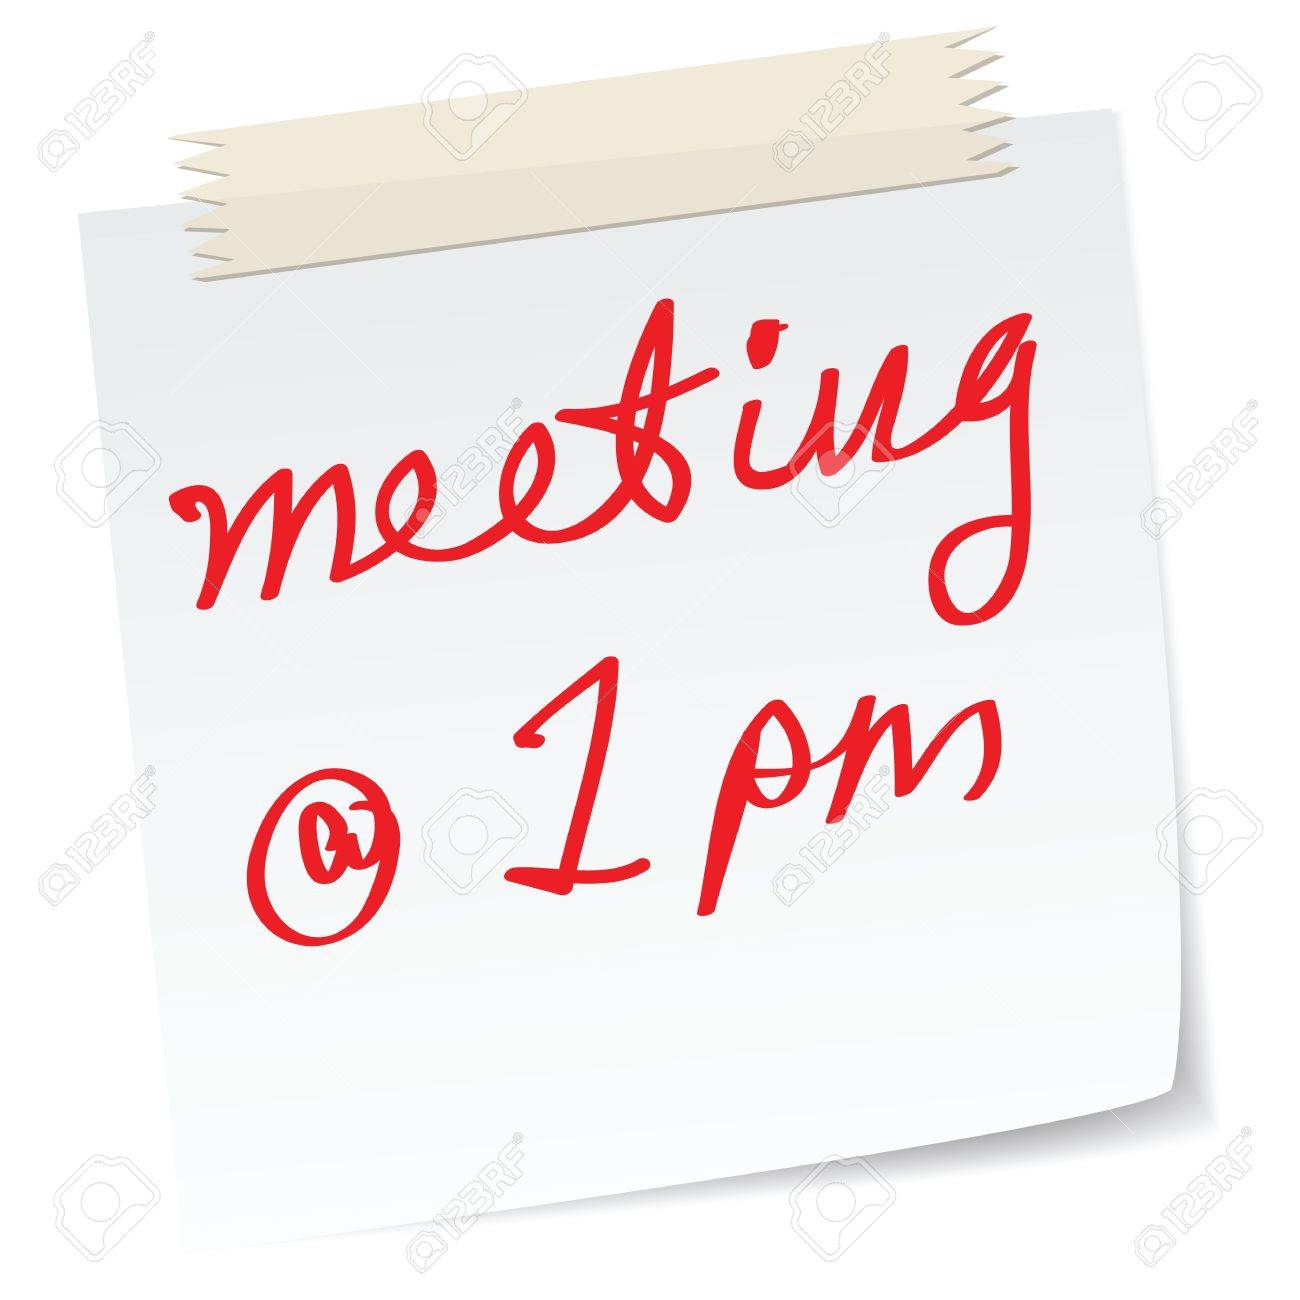 a handwritten notes with meeting appointments time Stock Vector - 11821003